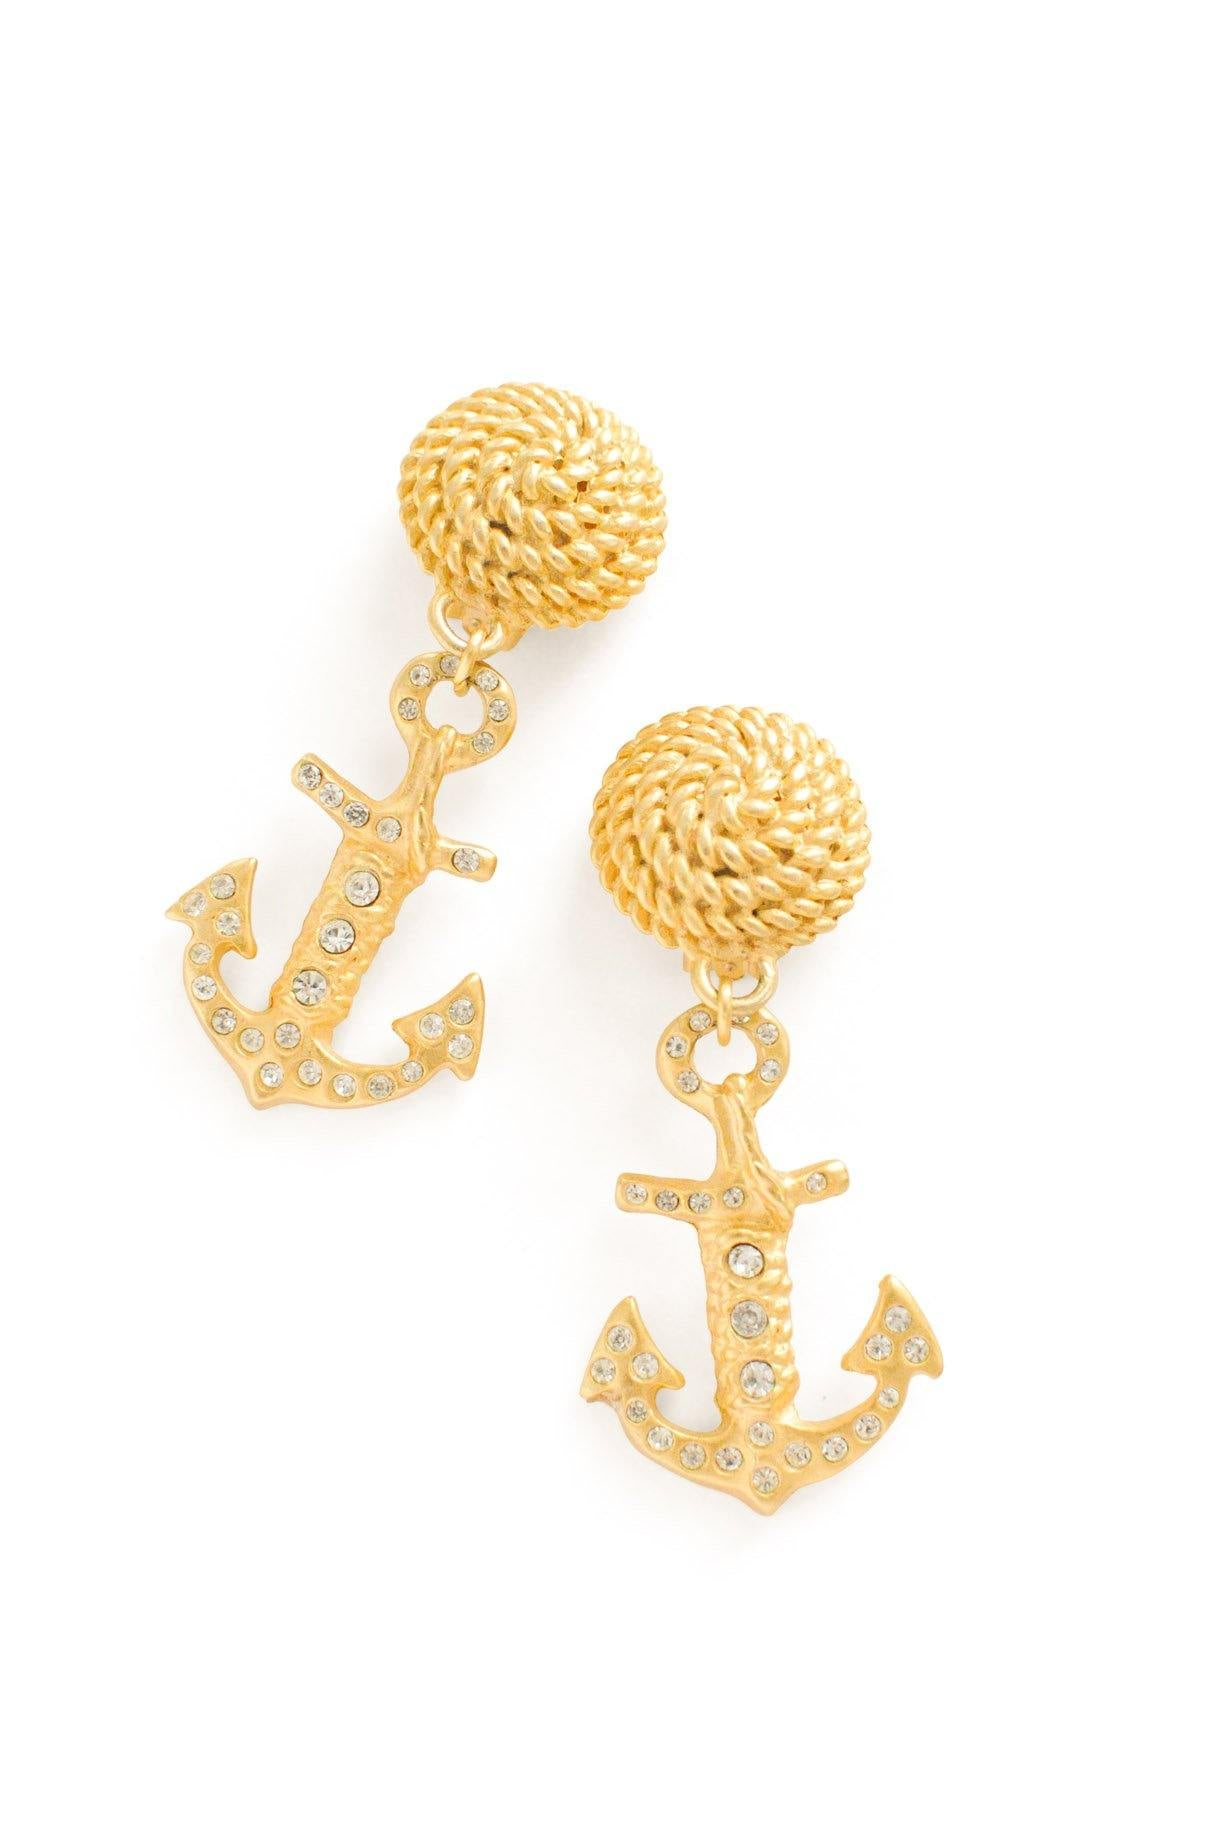 Anchor Statement Clip-on Earrings From Sweet & Spark